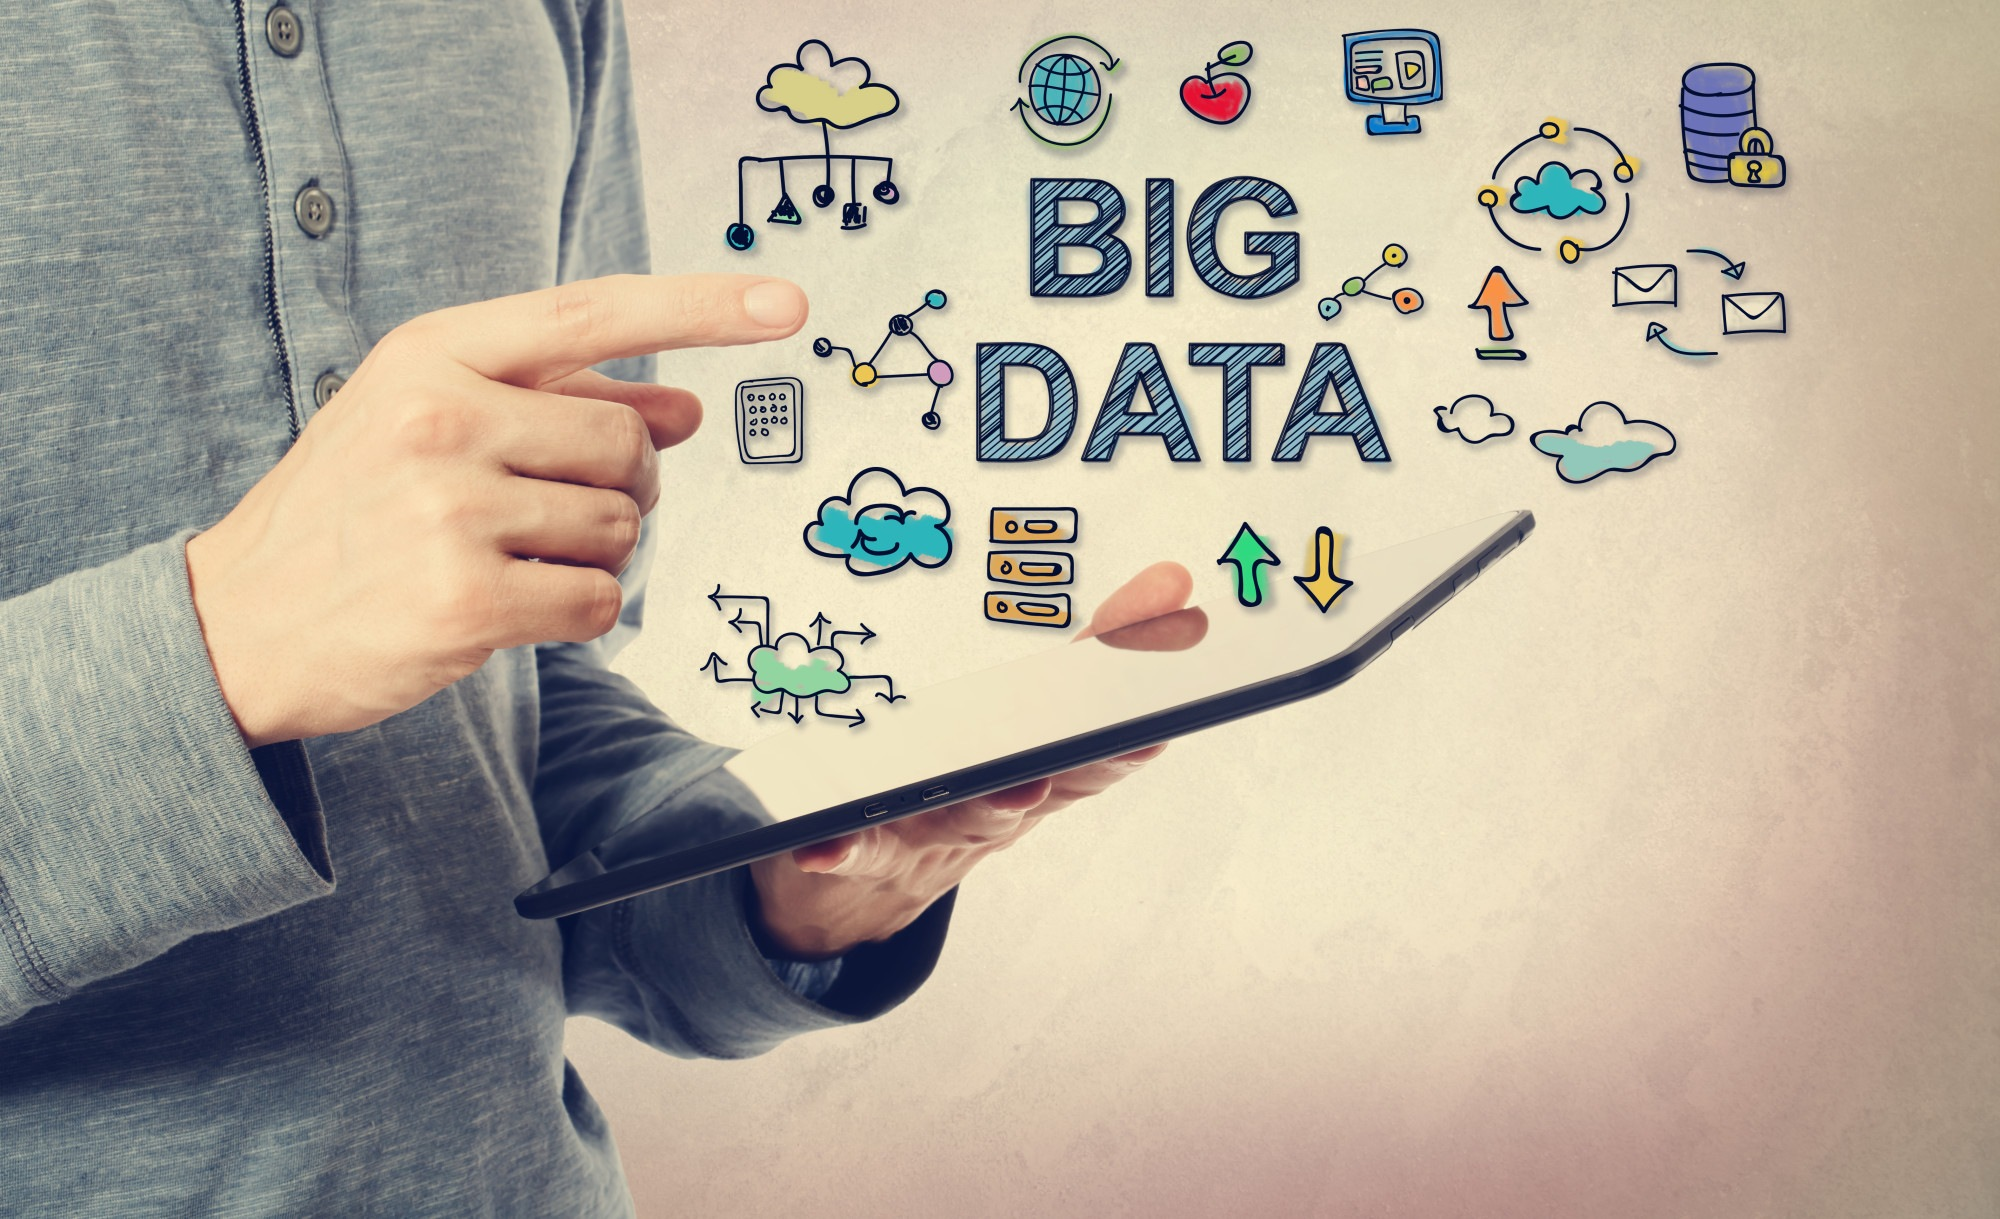 7 Effective Big Data Analytics Tools Your Business Should Use